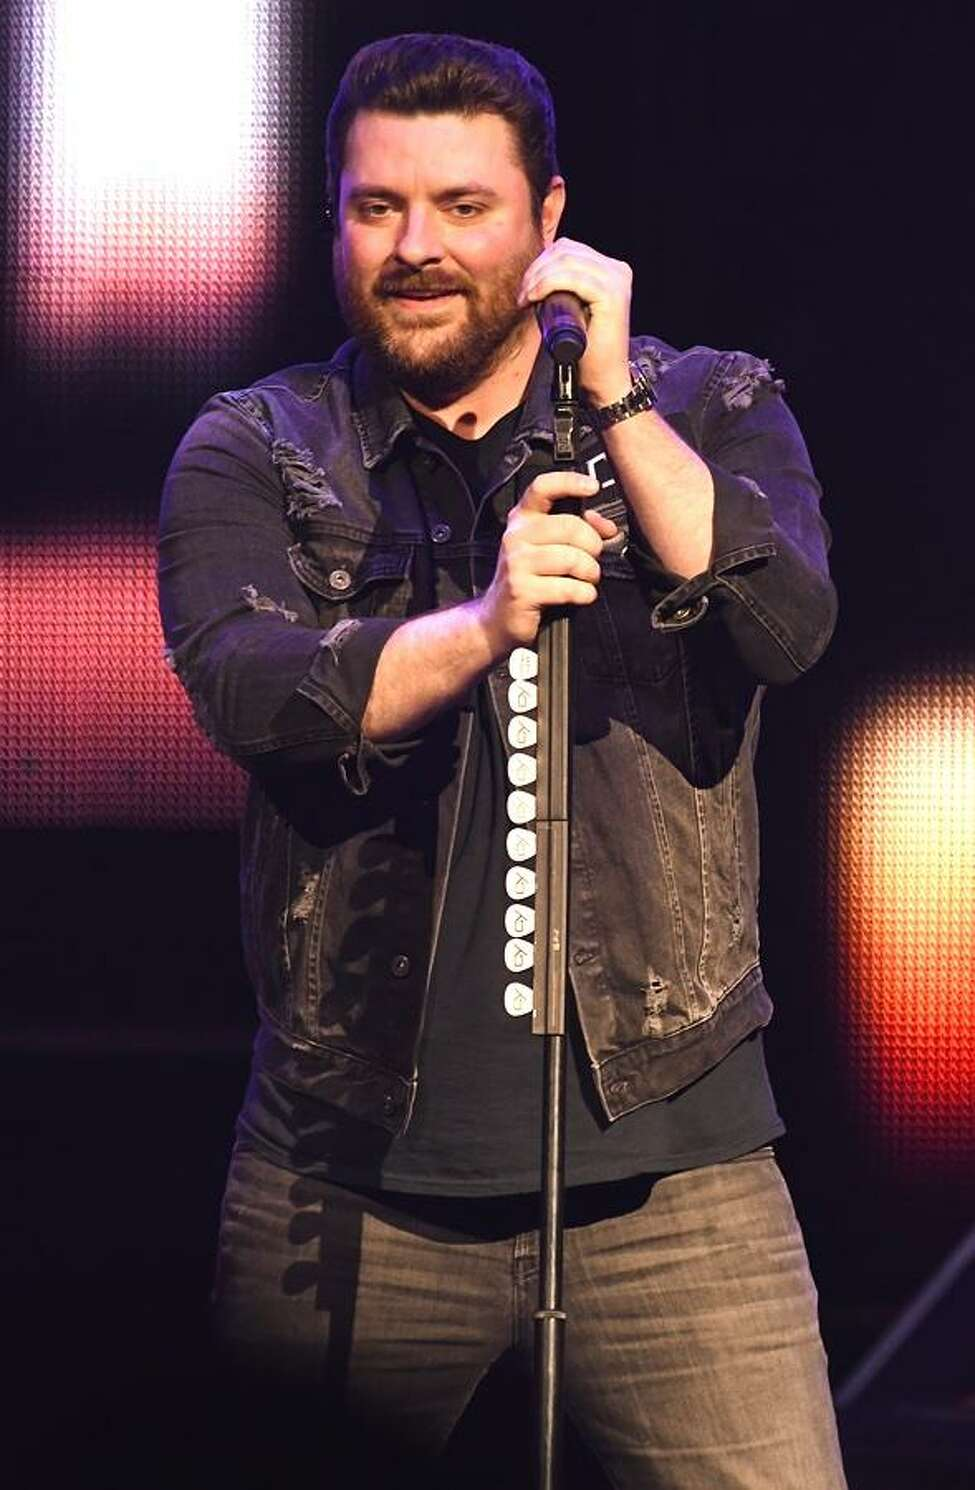 Chris Young will appear Aug. 28 with Scotty McCreery and Payton Smith at Saratoga Performing Arts Centerwith possible tickets under the County Megaticket package.